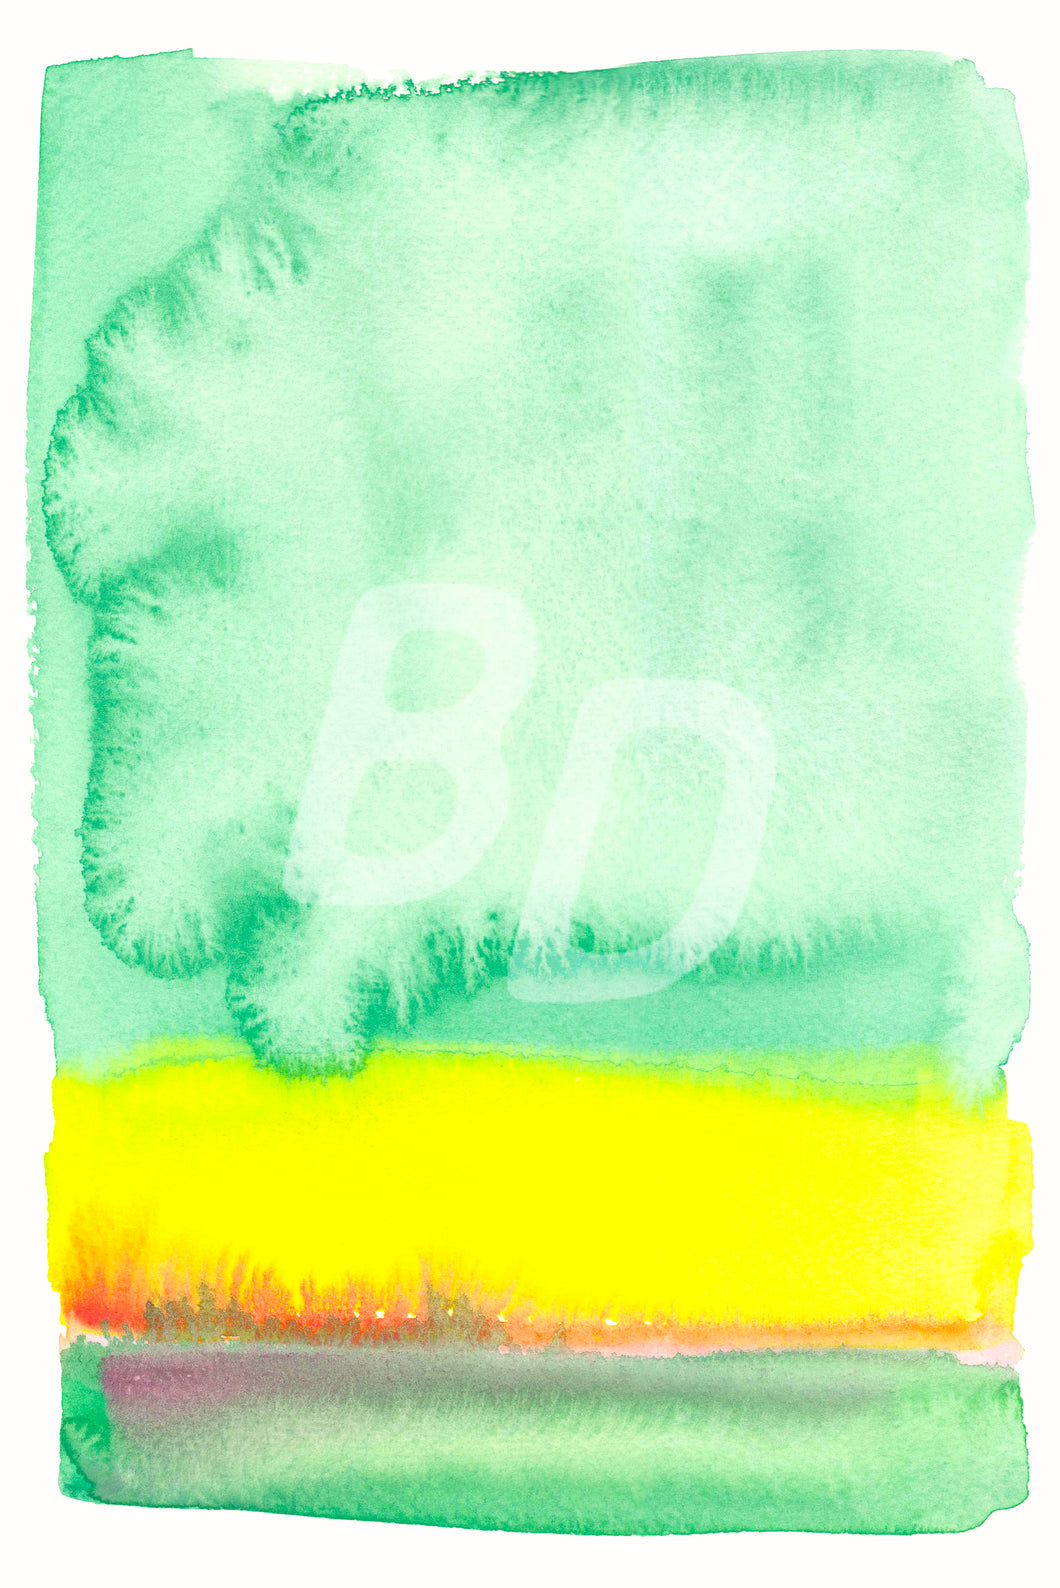 Watercolor stock photo - Backdropstock.com